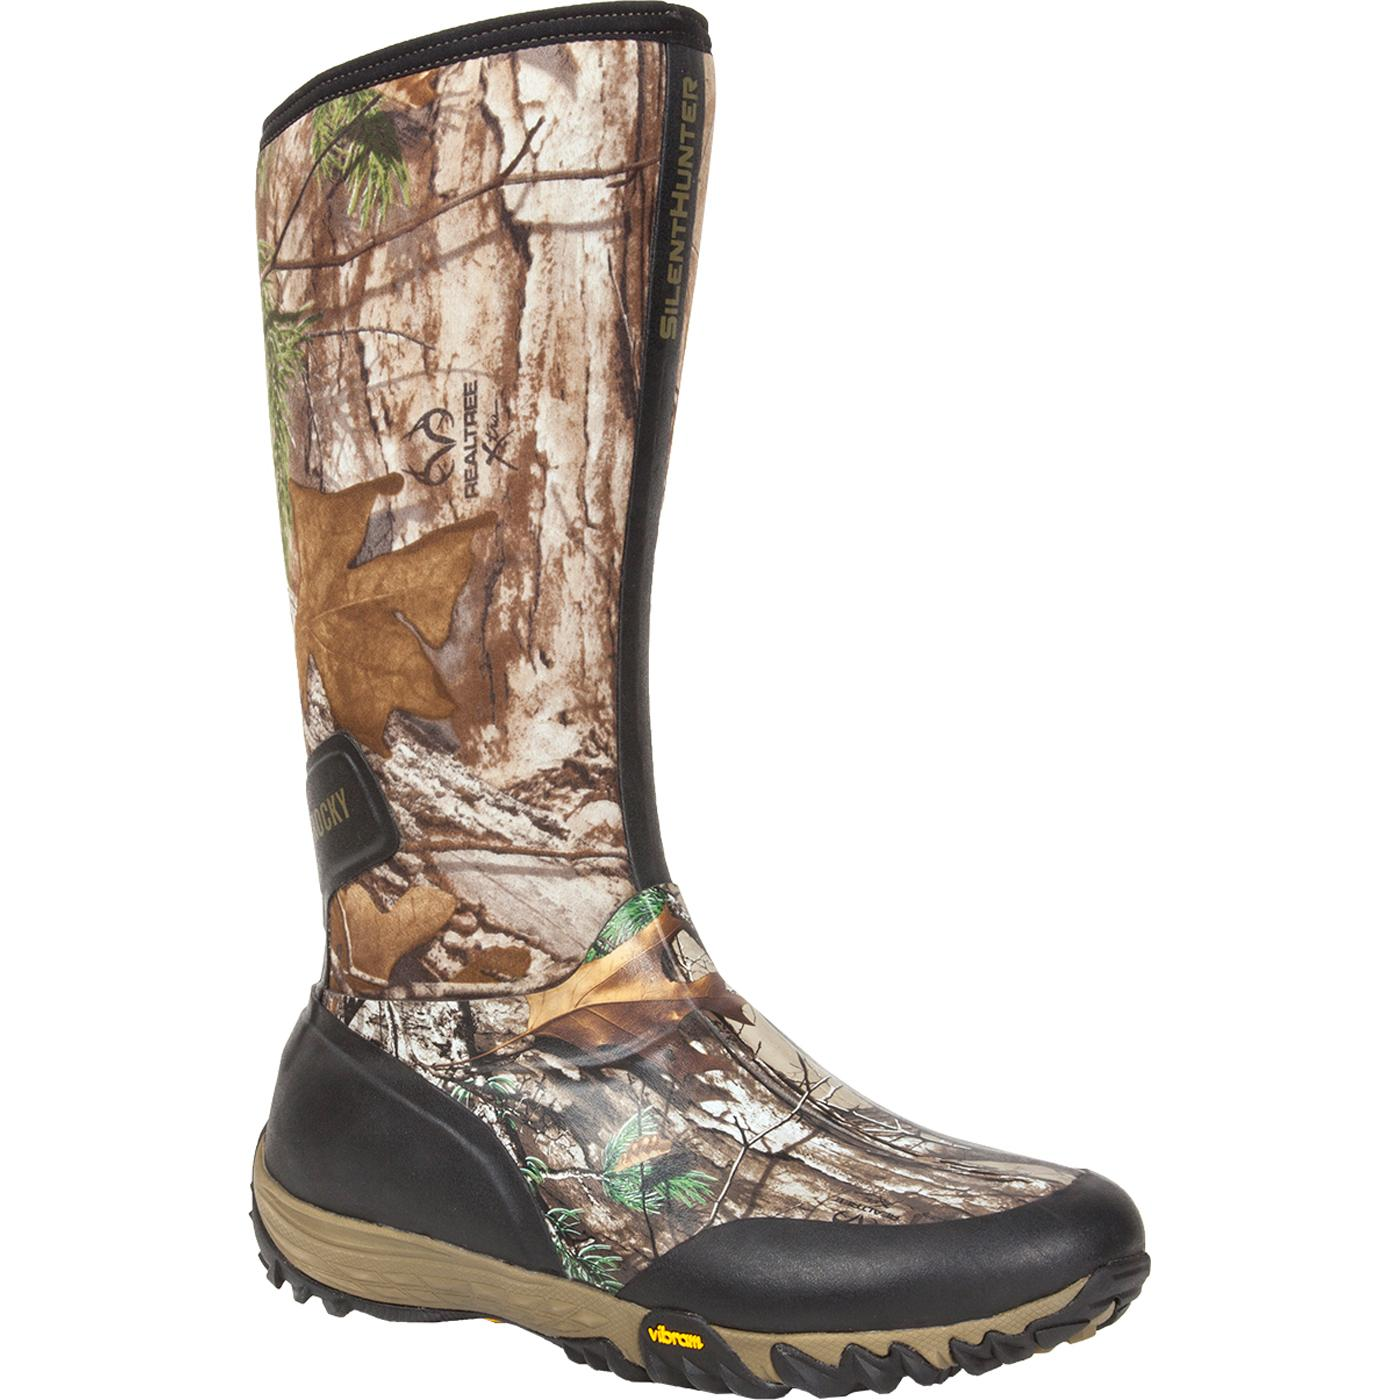 Rocky silenthunter waterproof 600g insulated rubber outdoor boot large